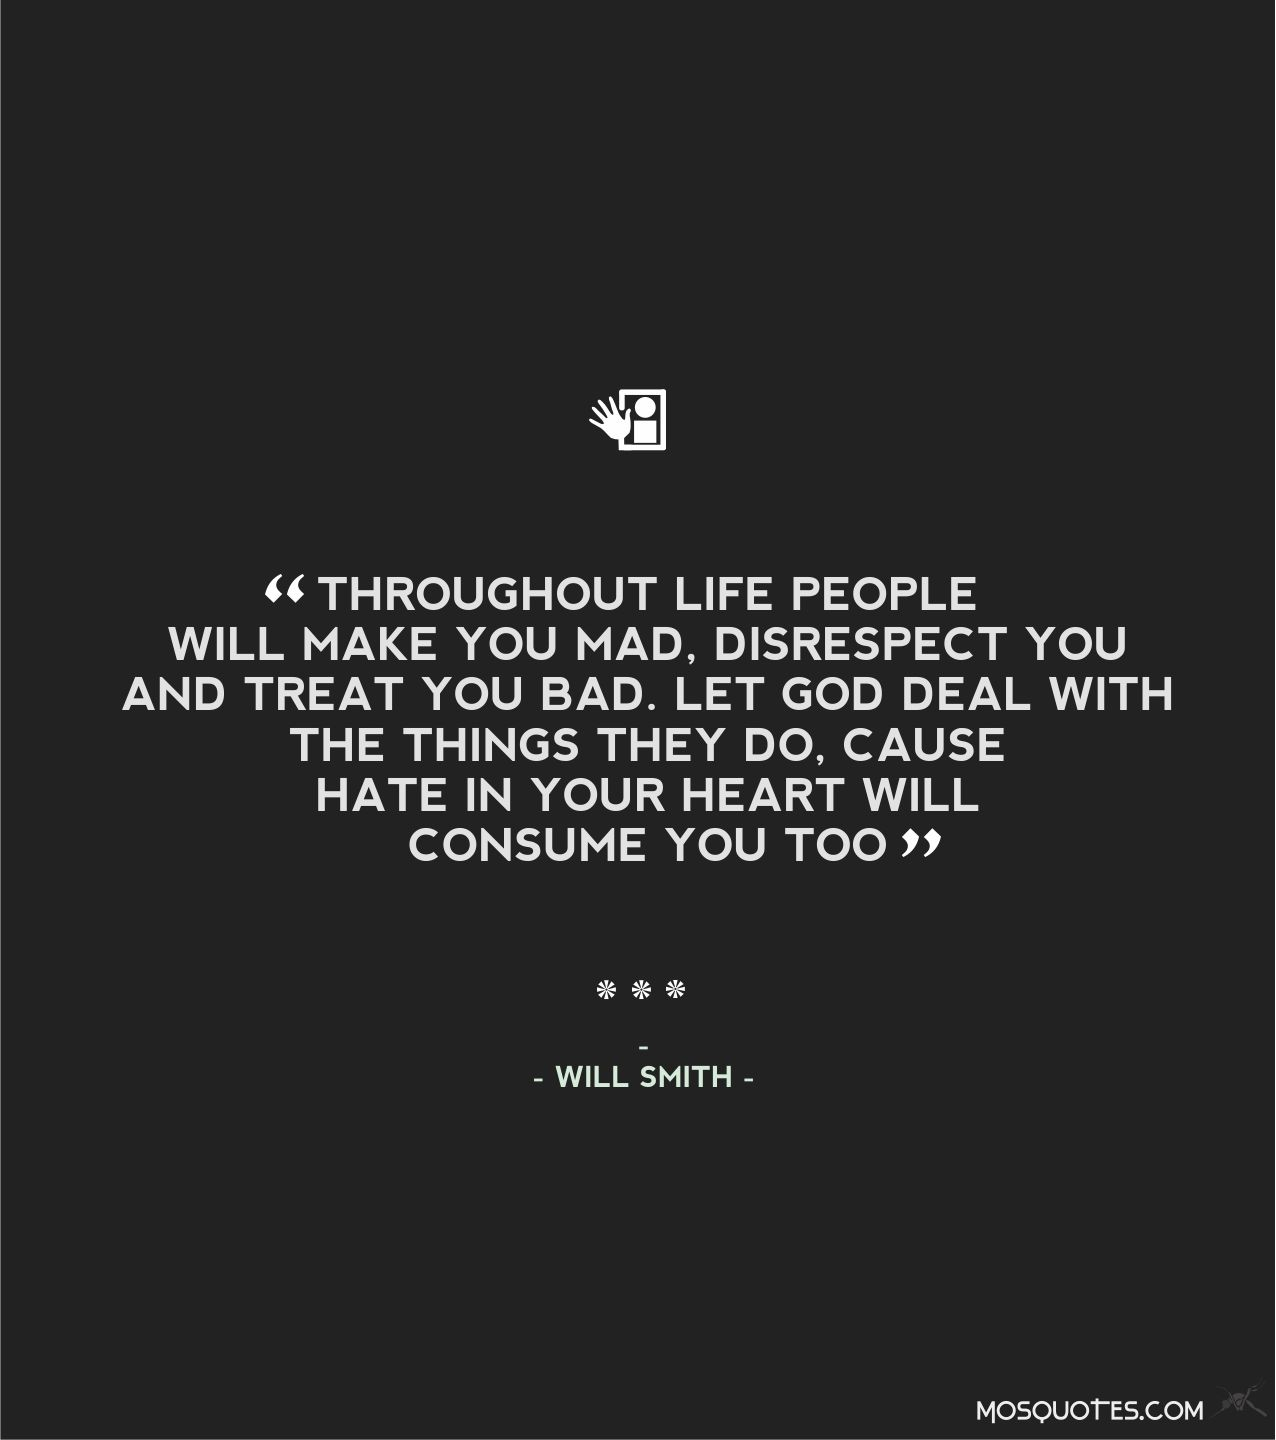 will smith famous quotes quotesgram